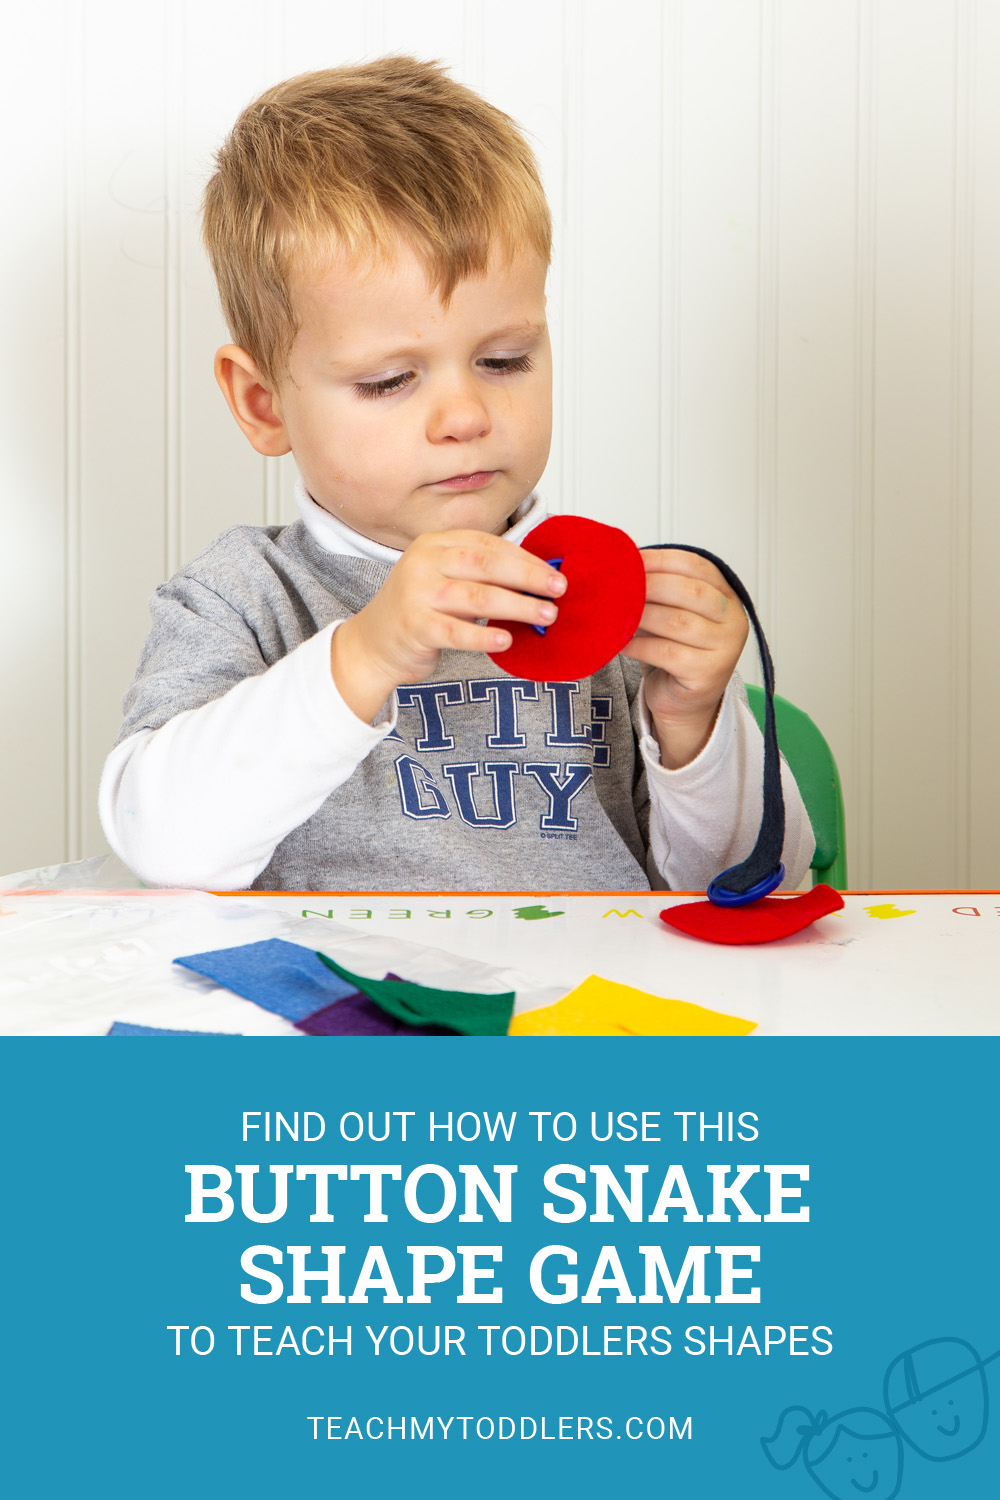 Find out how to use this button snake shape game to teach your toddlers shapes